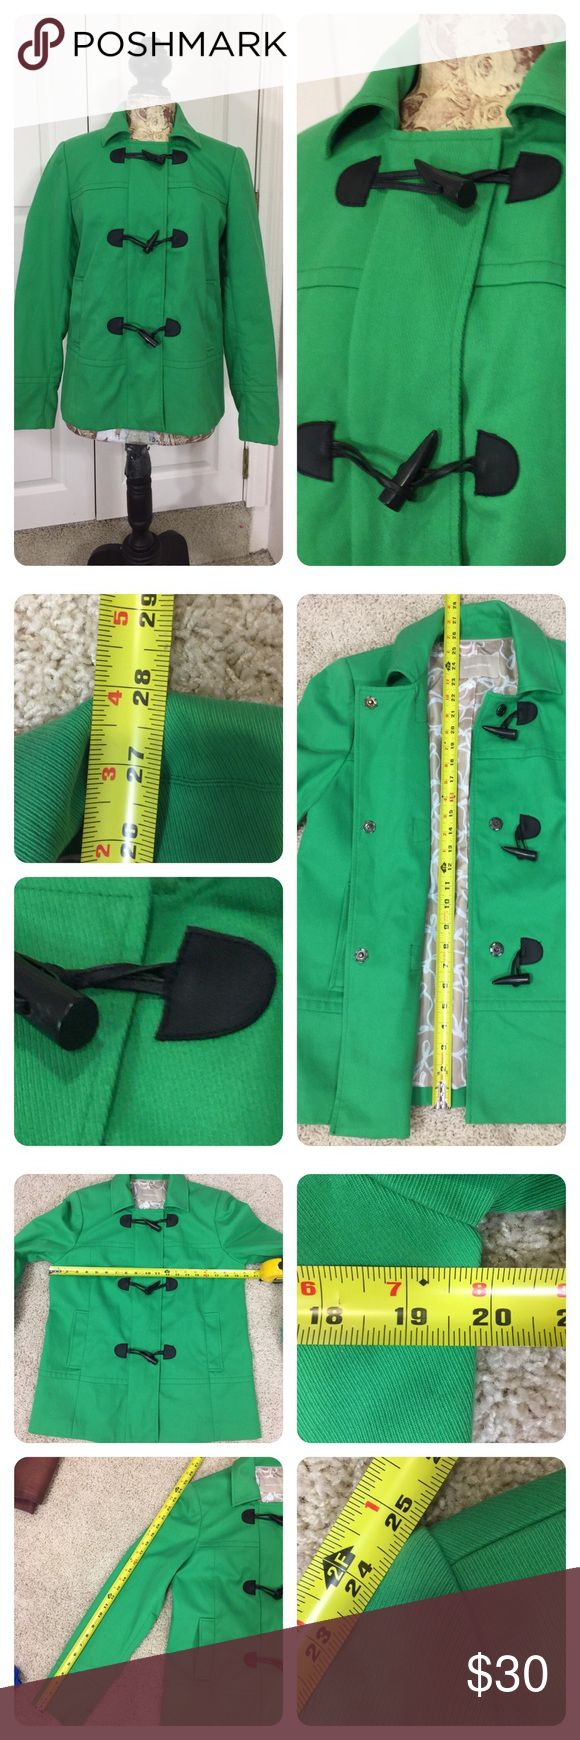 Banana Republic coat with toggle buttons Add some color to your closet with this classic cut green coat from Banana Republic!  Fun toggle buttons. Pretty tan and white lining. No size or material tag. Guessing a Medium ( check measurements) and cotton blend. Great layering piece!  No flaws noted. Banana Republic Jackets & Coats